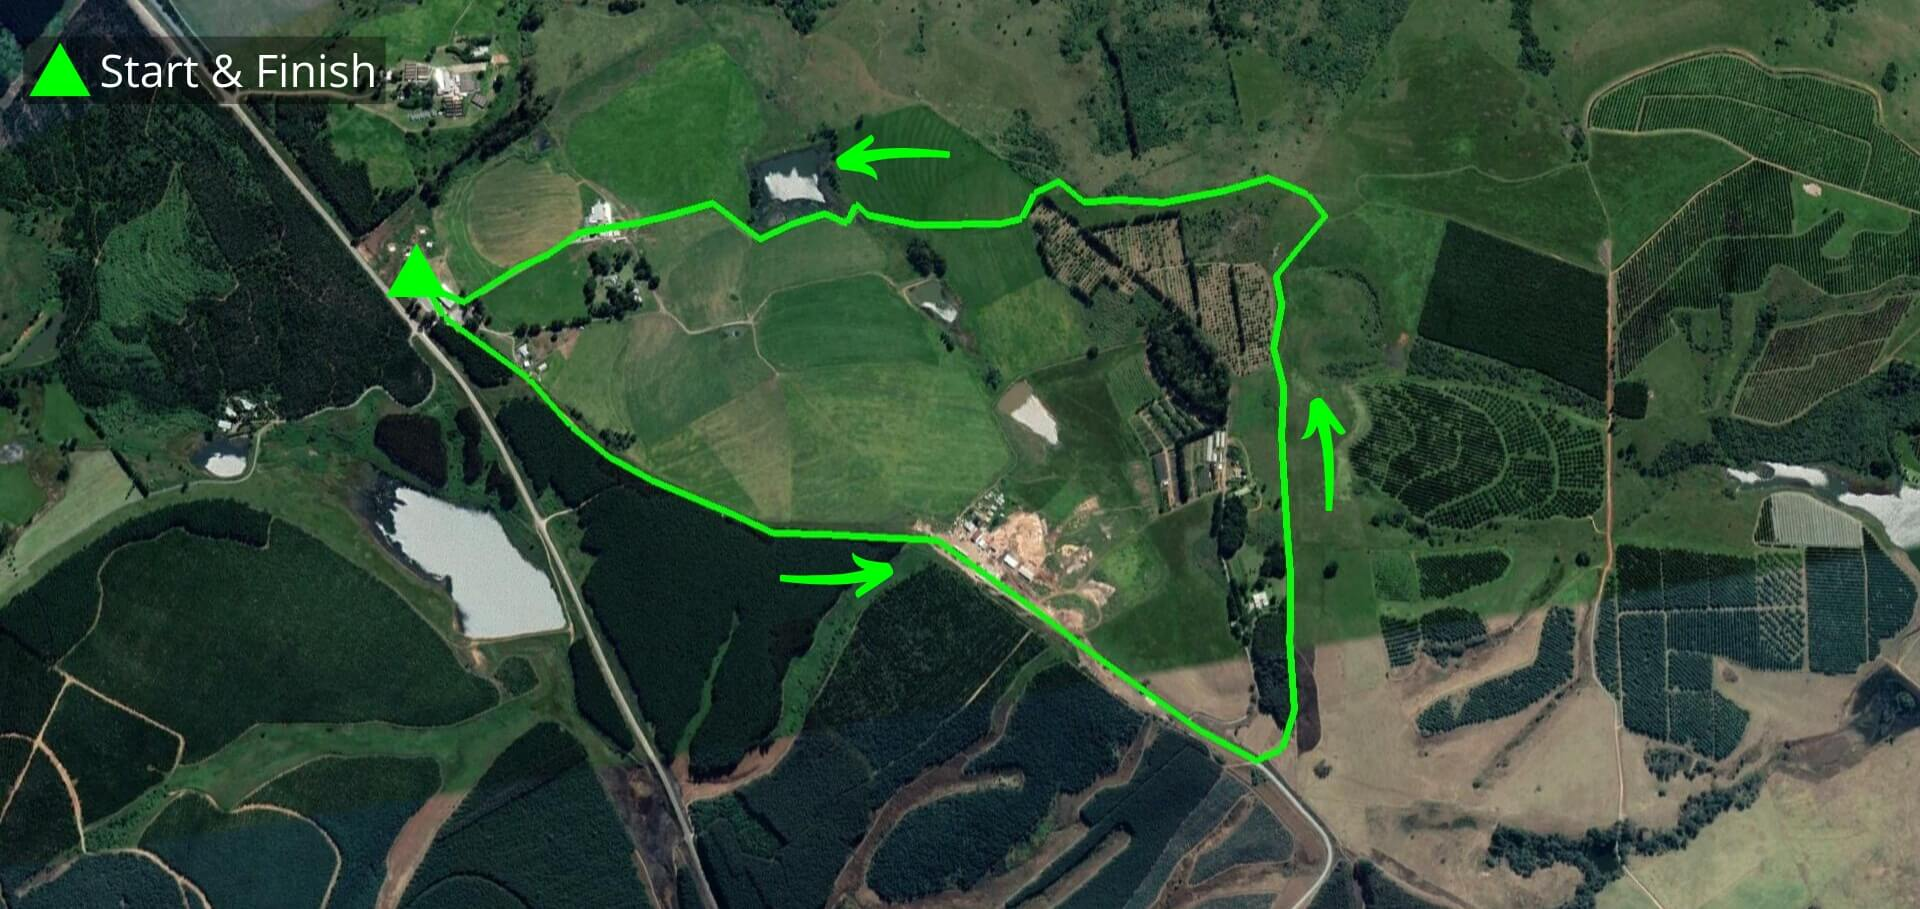 KZNTR Howick Trail Run Mar20 - 5km Course Route (Directioned)